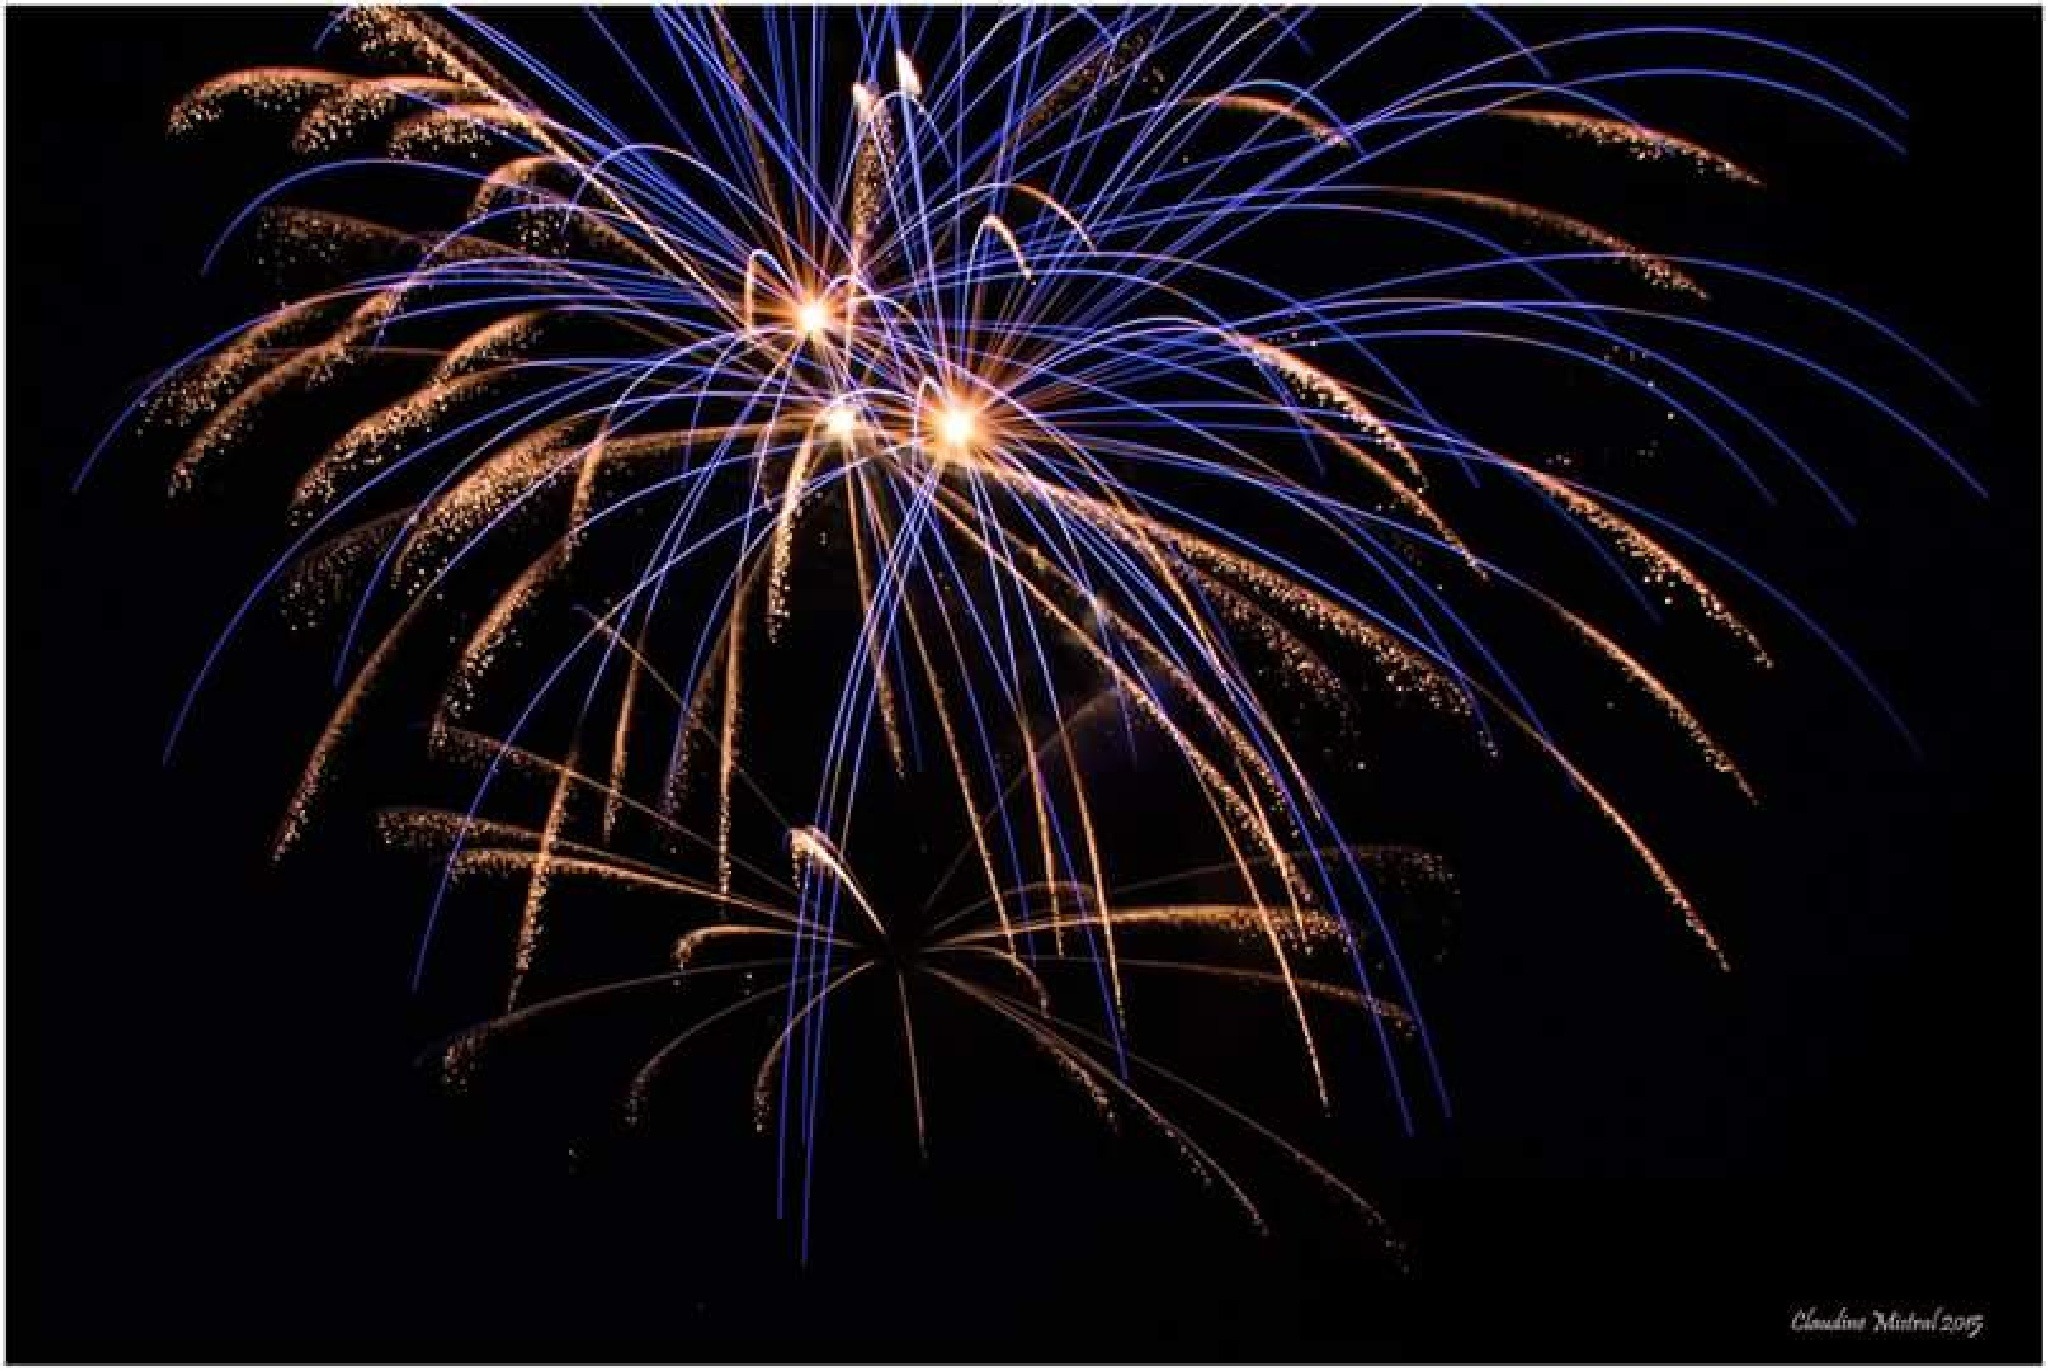 Feu d'artifice by Claudine Mistral